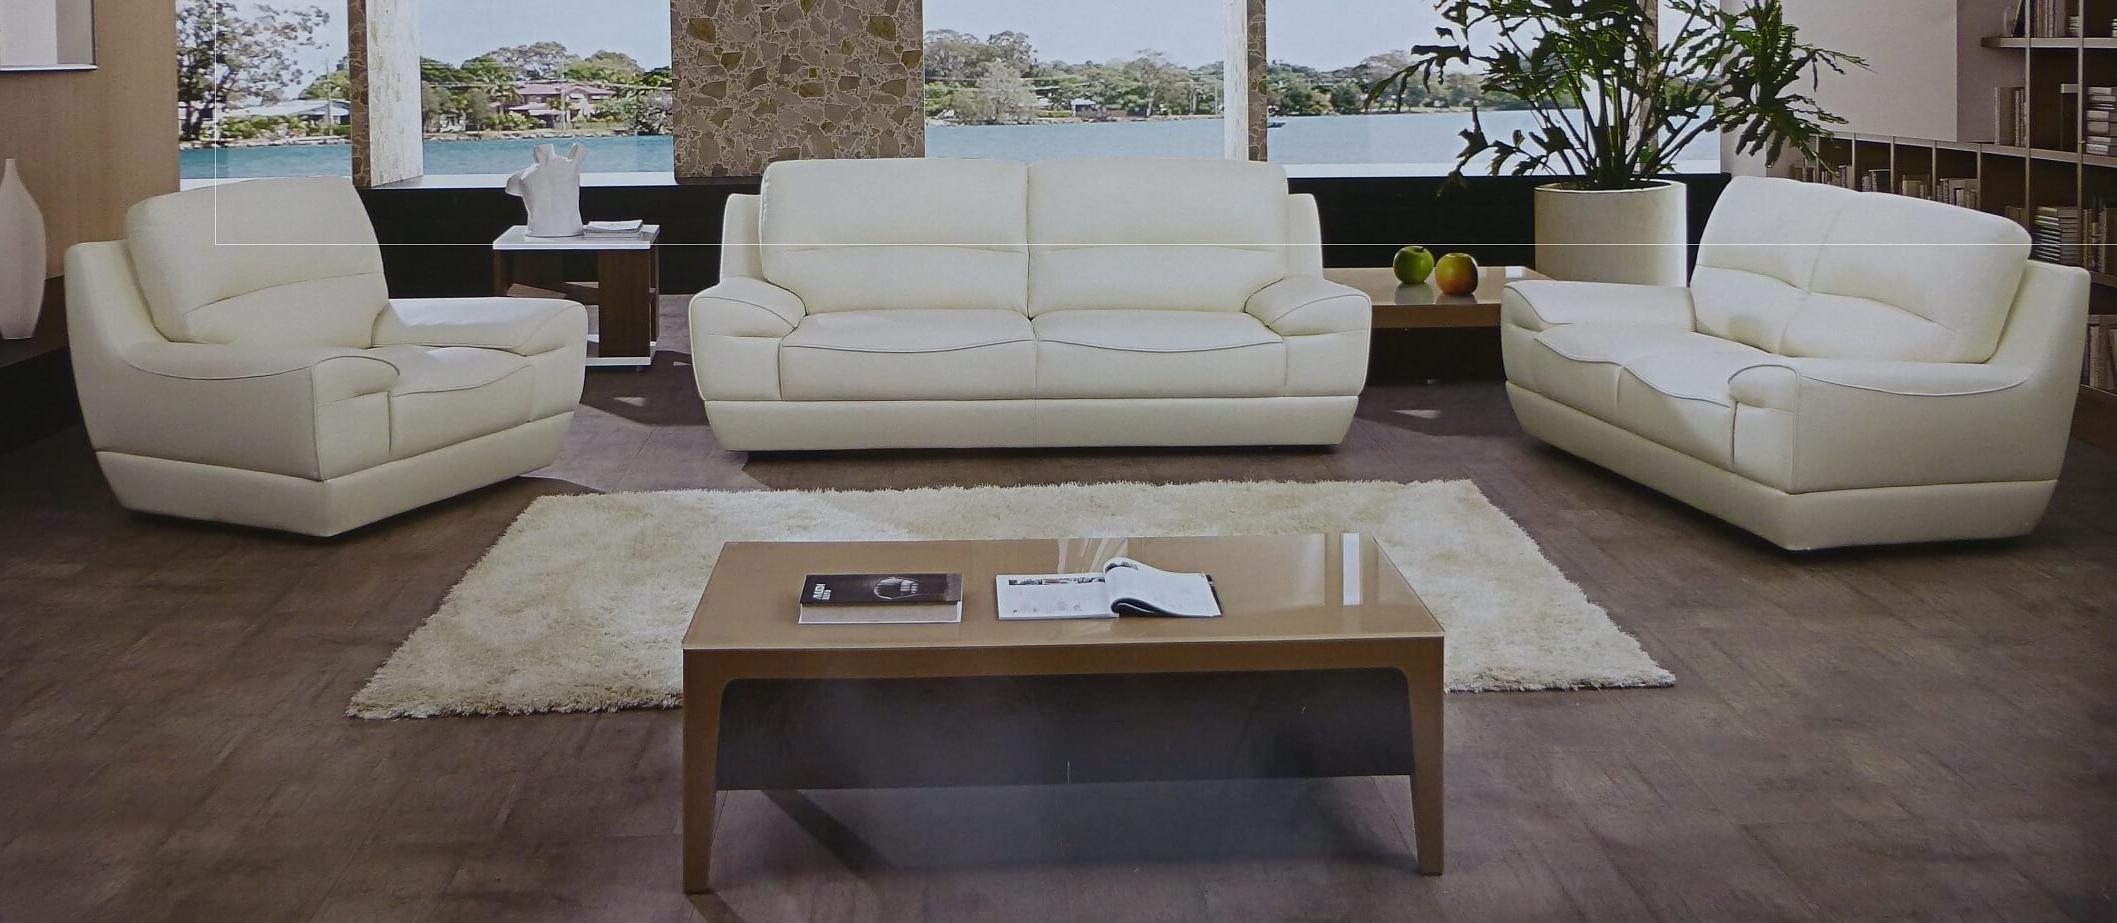 Off White Leather Sofas Throughout Favorite Sofa: Designs White Sofa And Loveseat White Fabric Sofa, White (View 13 of 15)